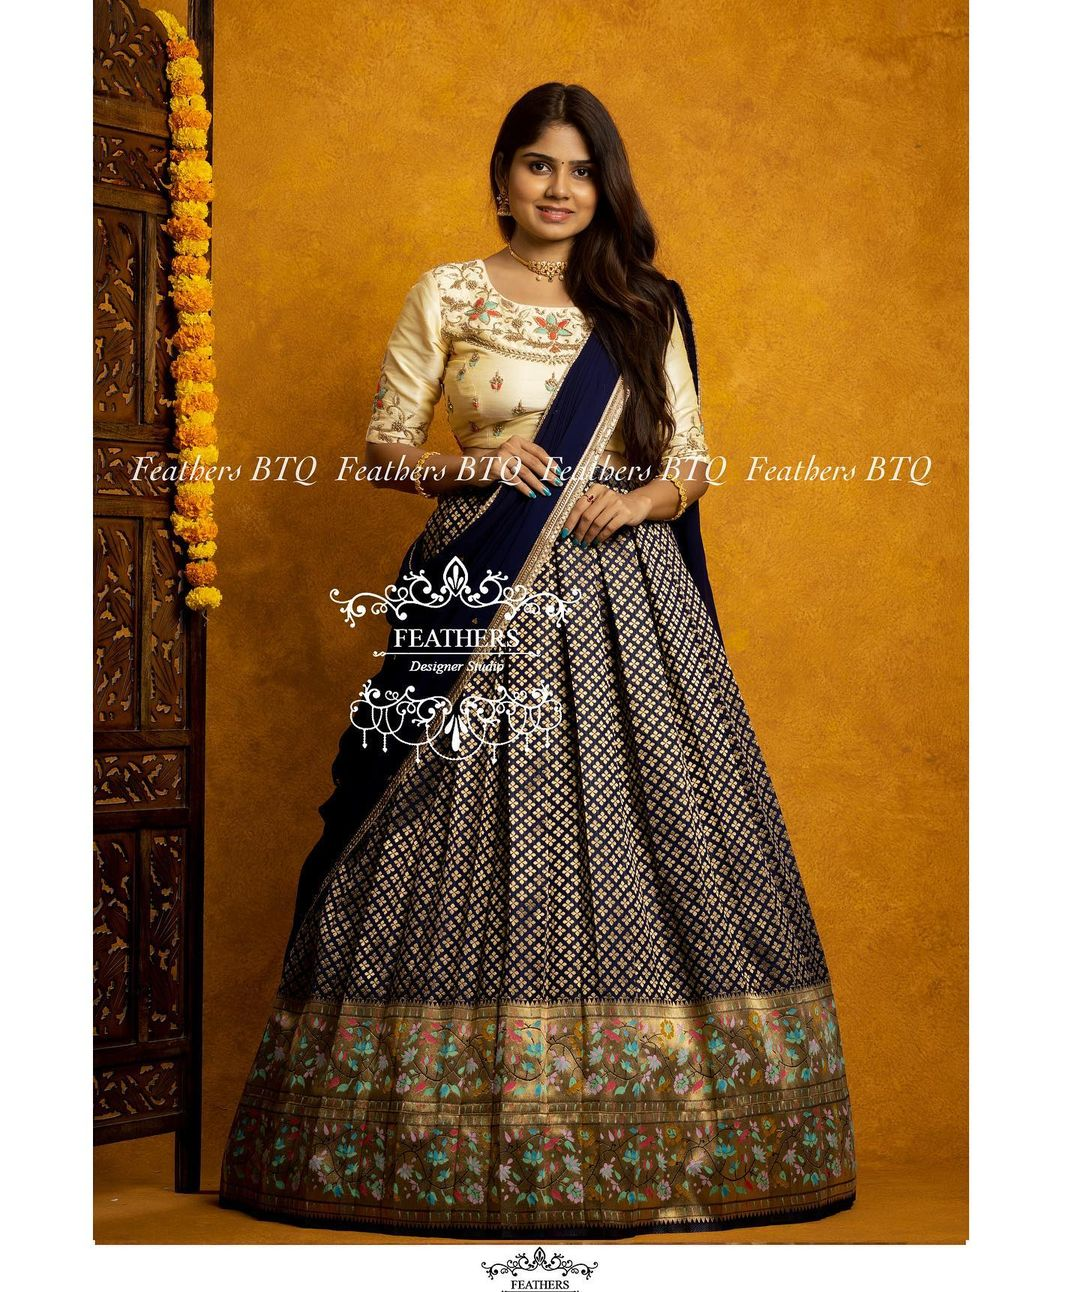 Stunning deep blue color pattu lehenga and off white color blouse with net dupatta. 2021-09-27